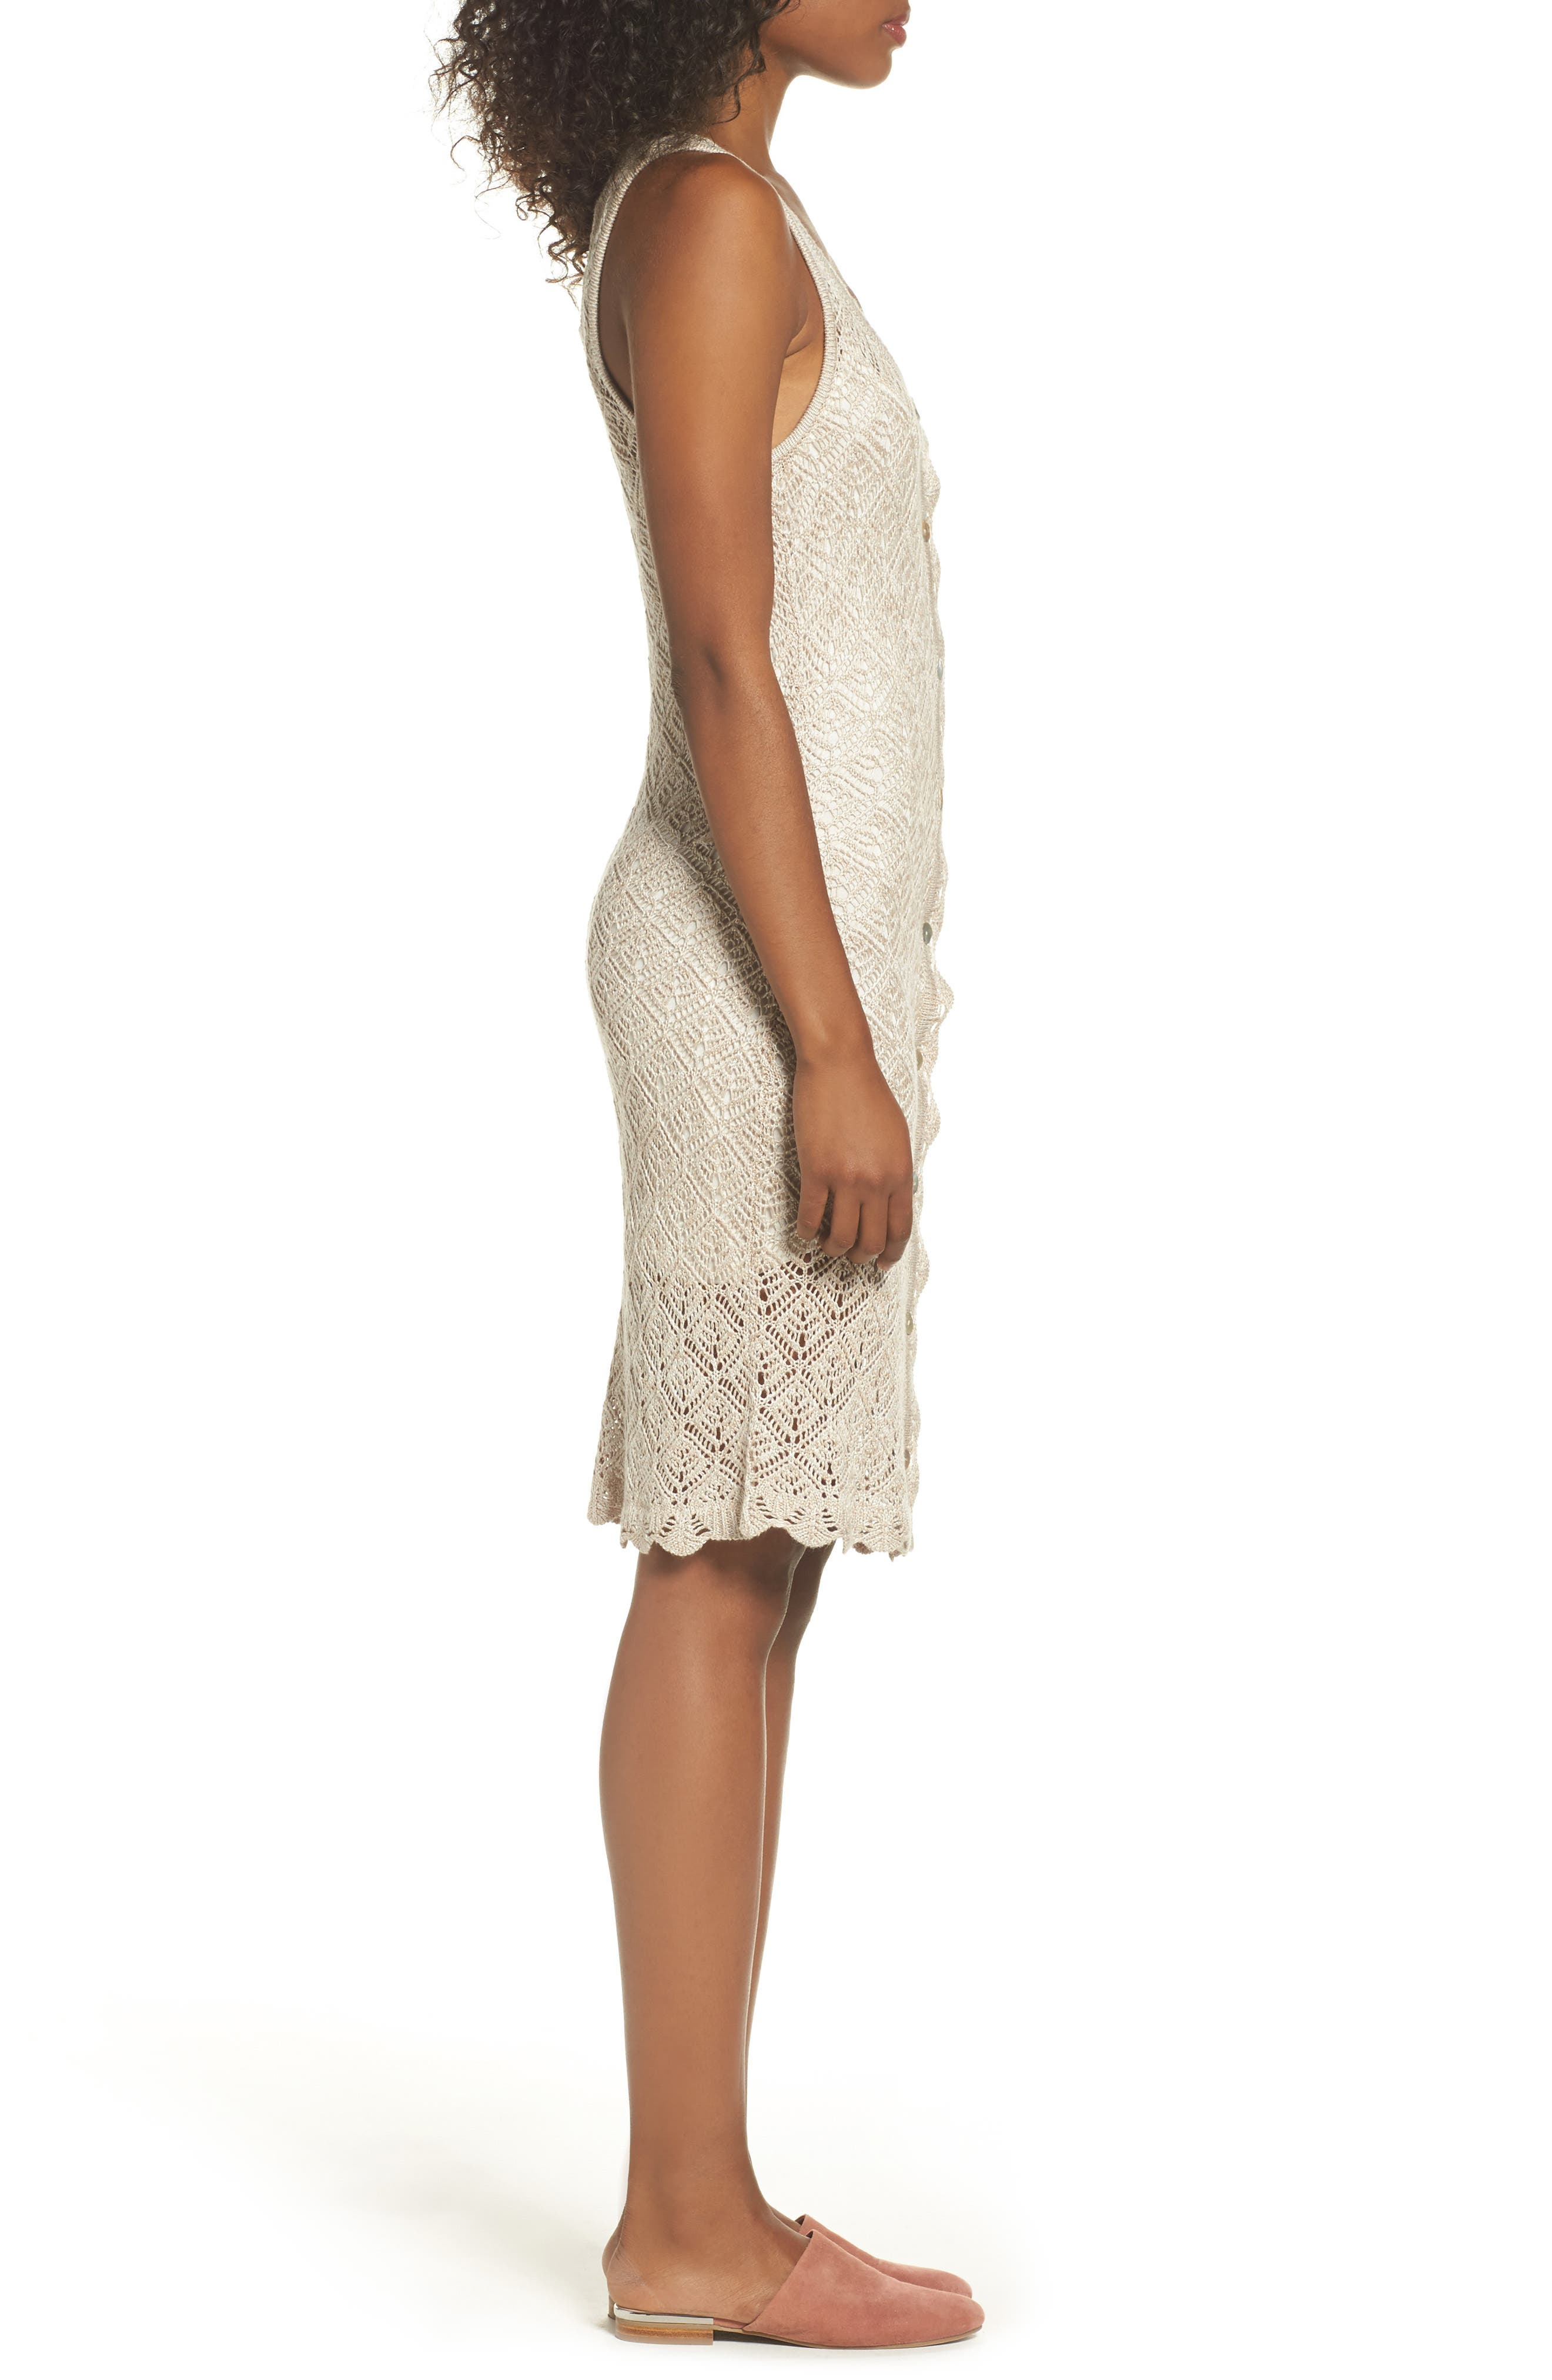 Picnic By The Lagoon Lace Dress,                             Alternate thumbnail 3, color,                             261